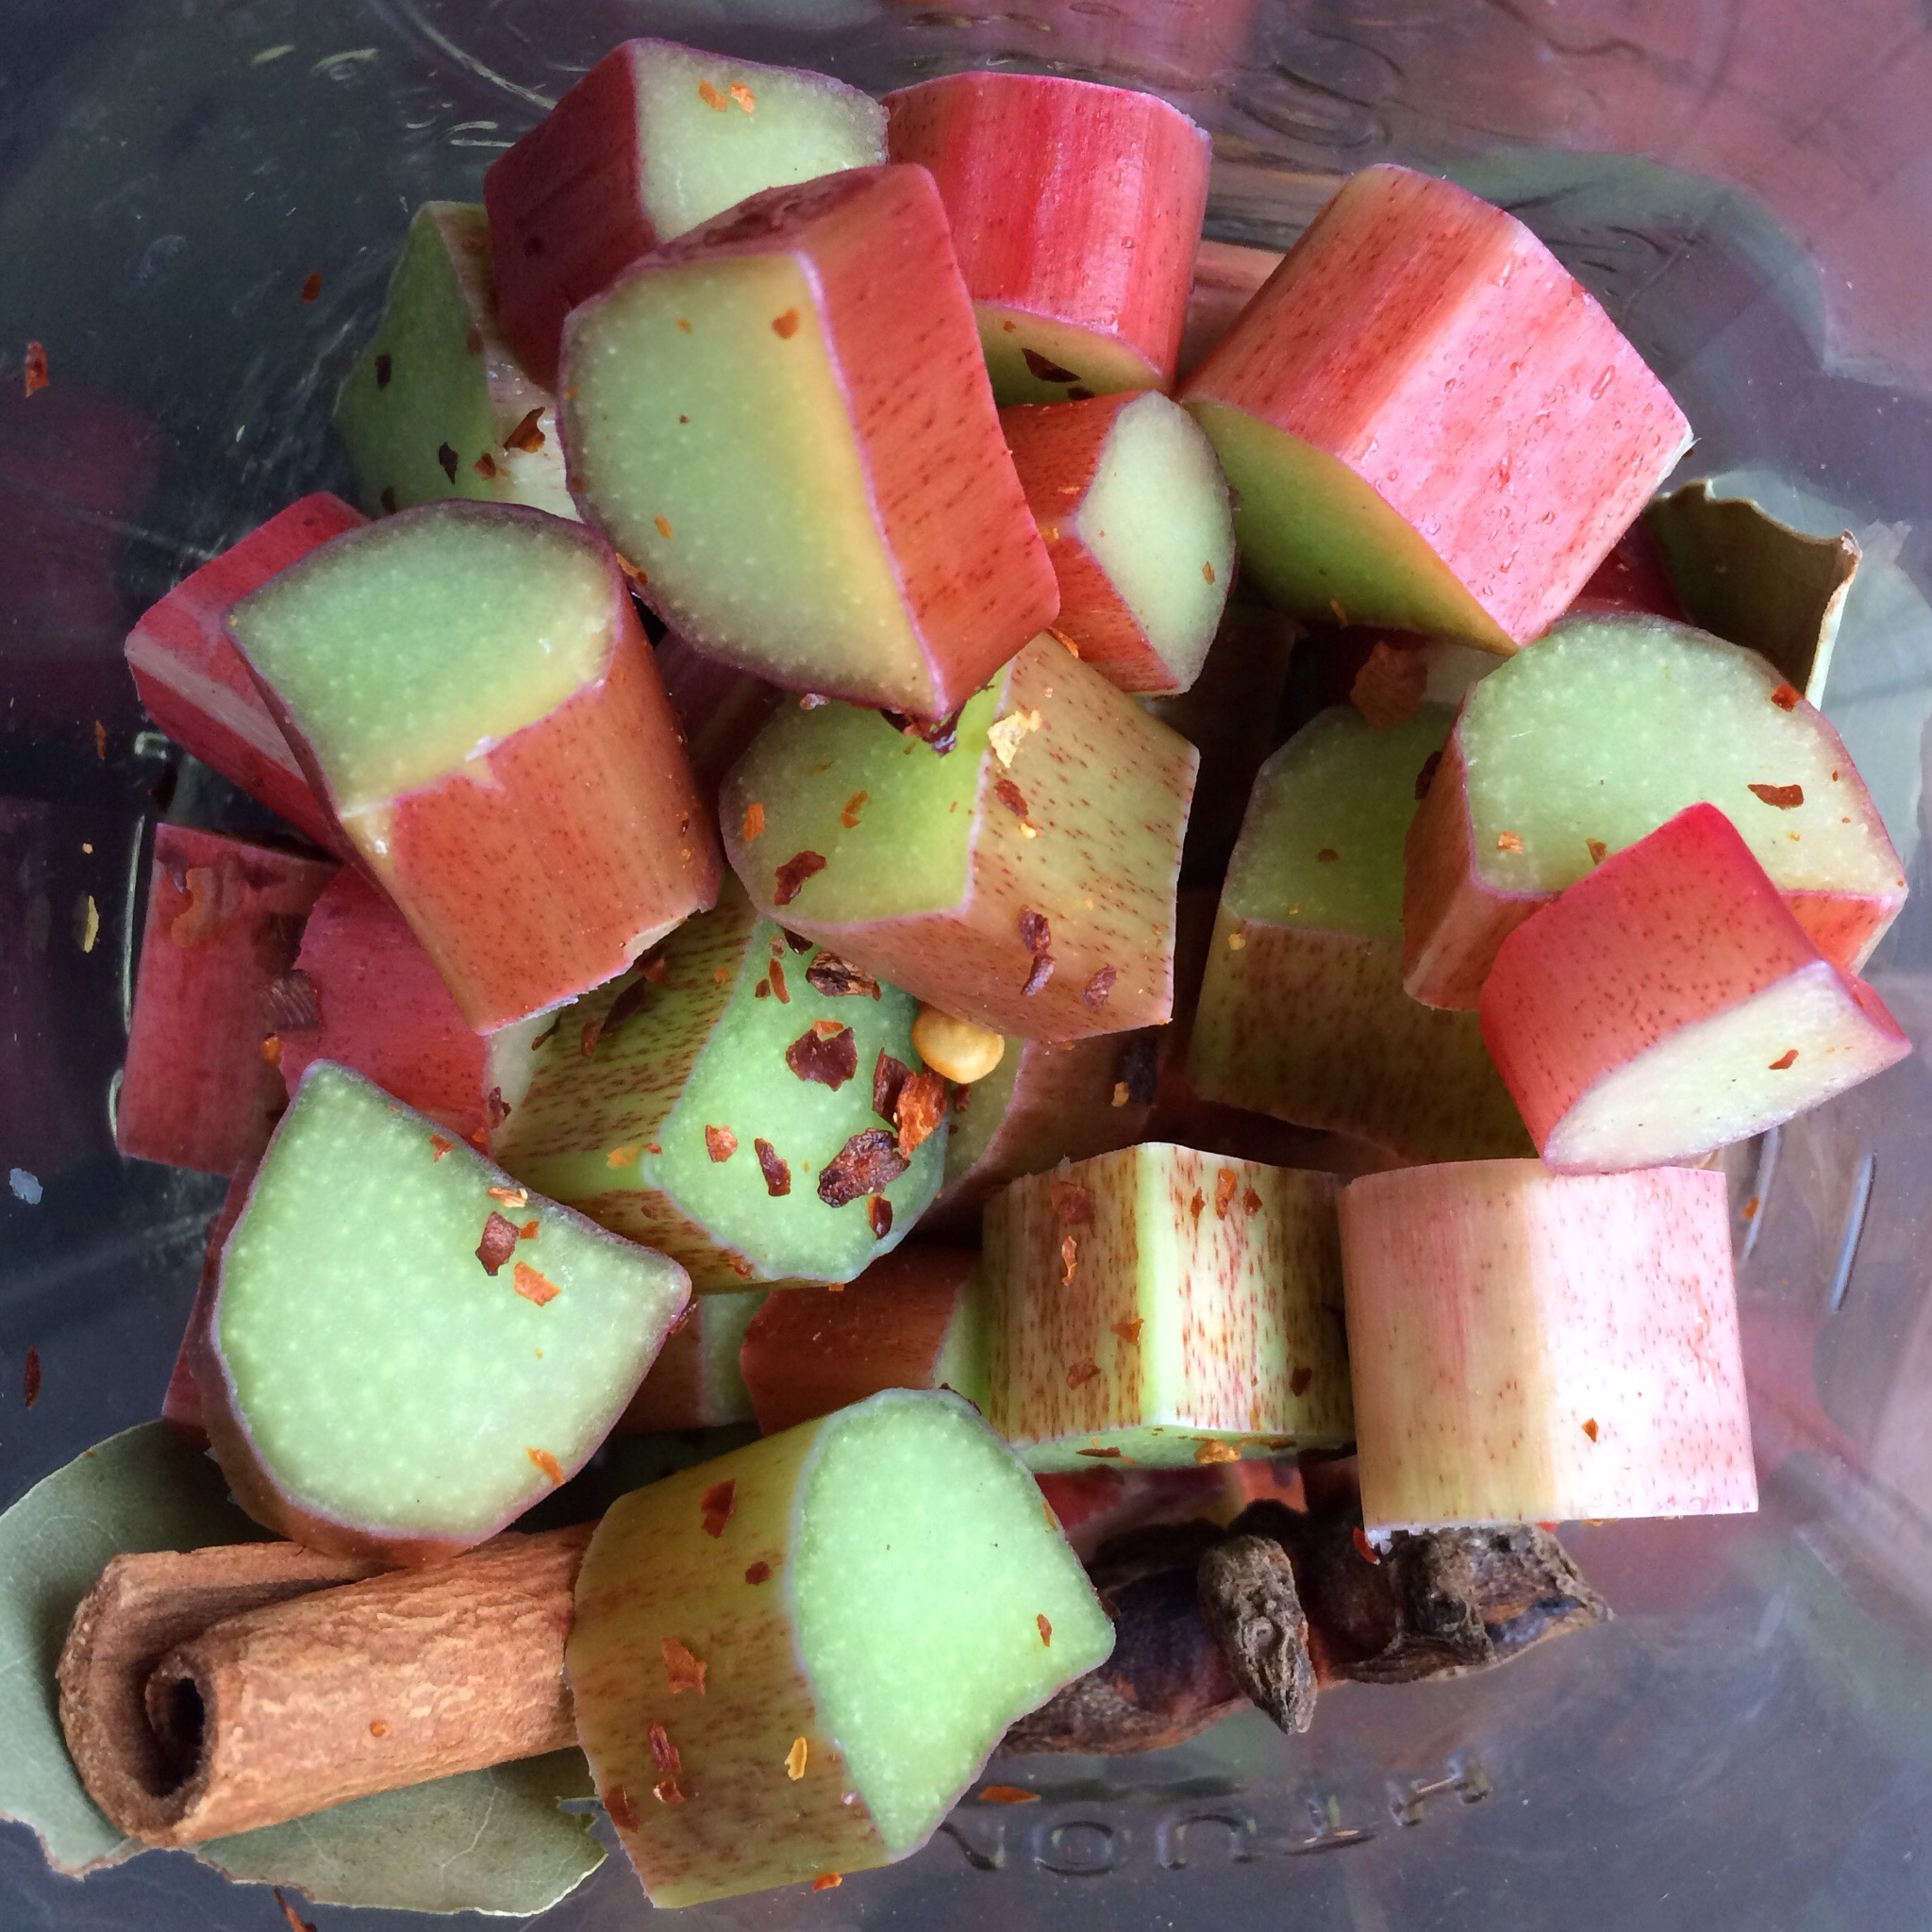 Trying a new recipe - rhubarb refrigerator pickles.